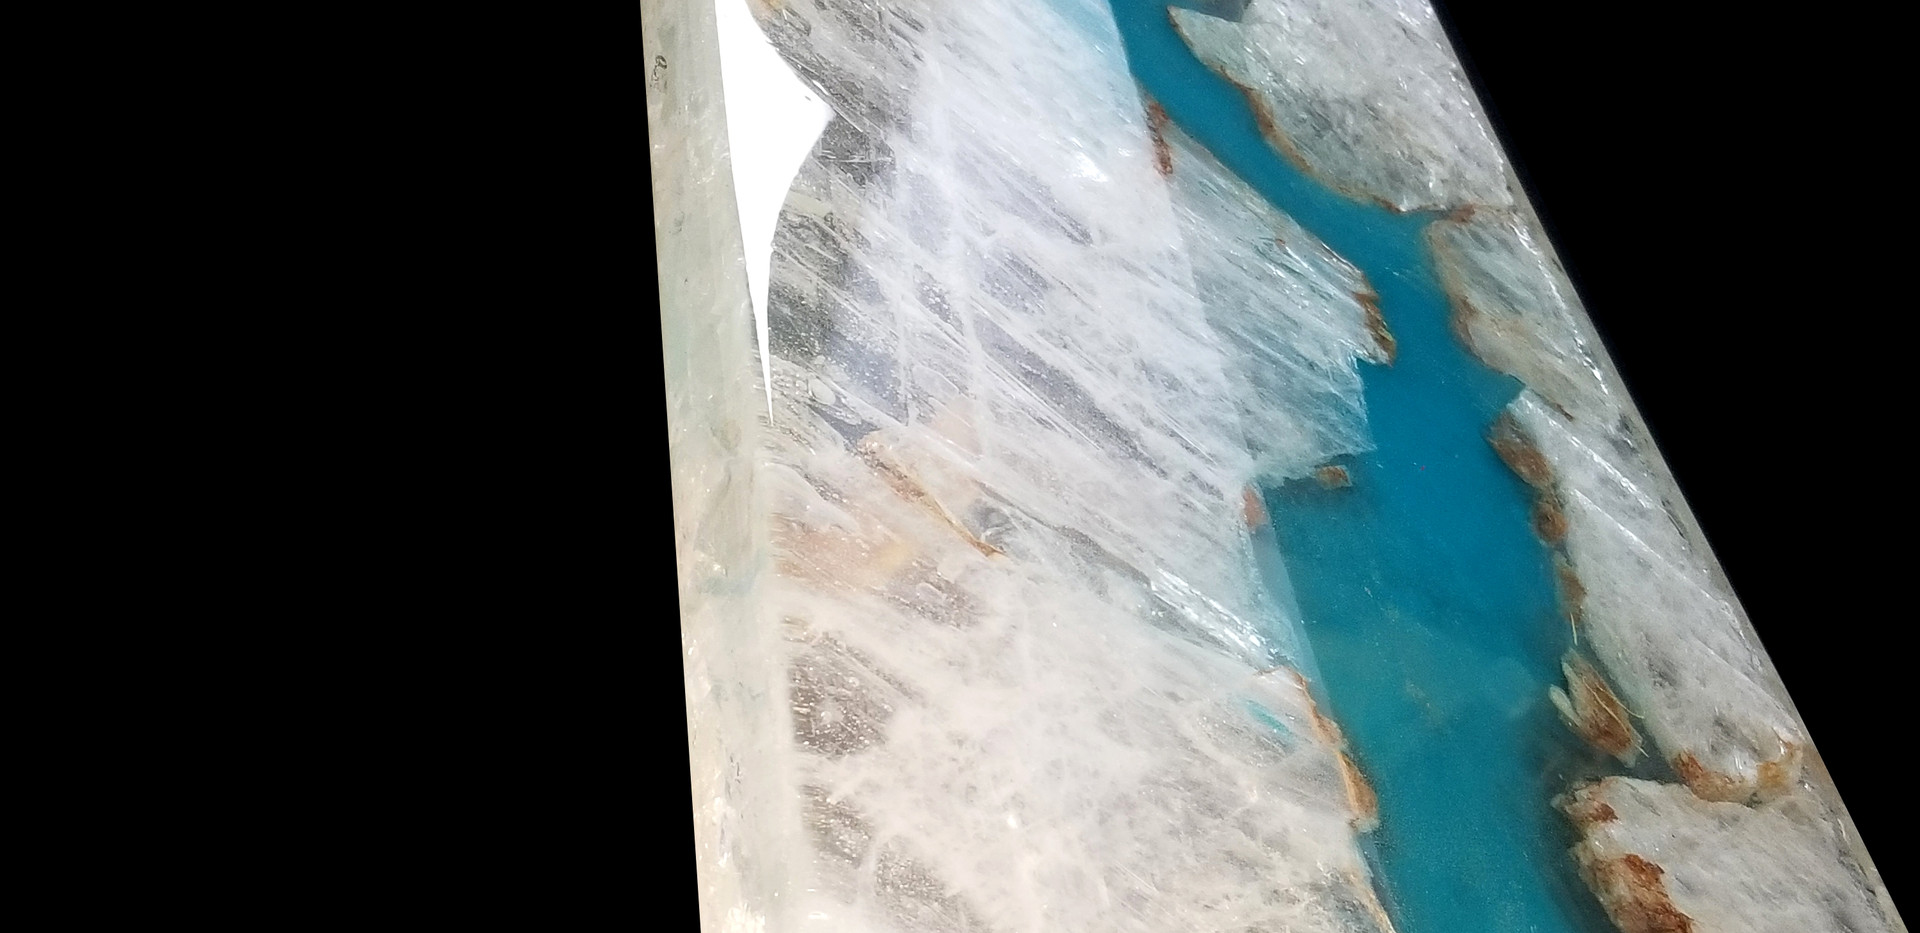 Solid 150lb ice selenite crystal & resin tabletop